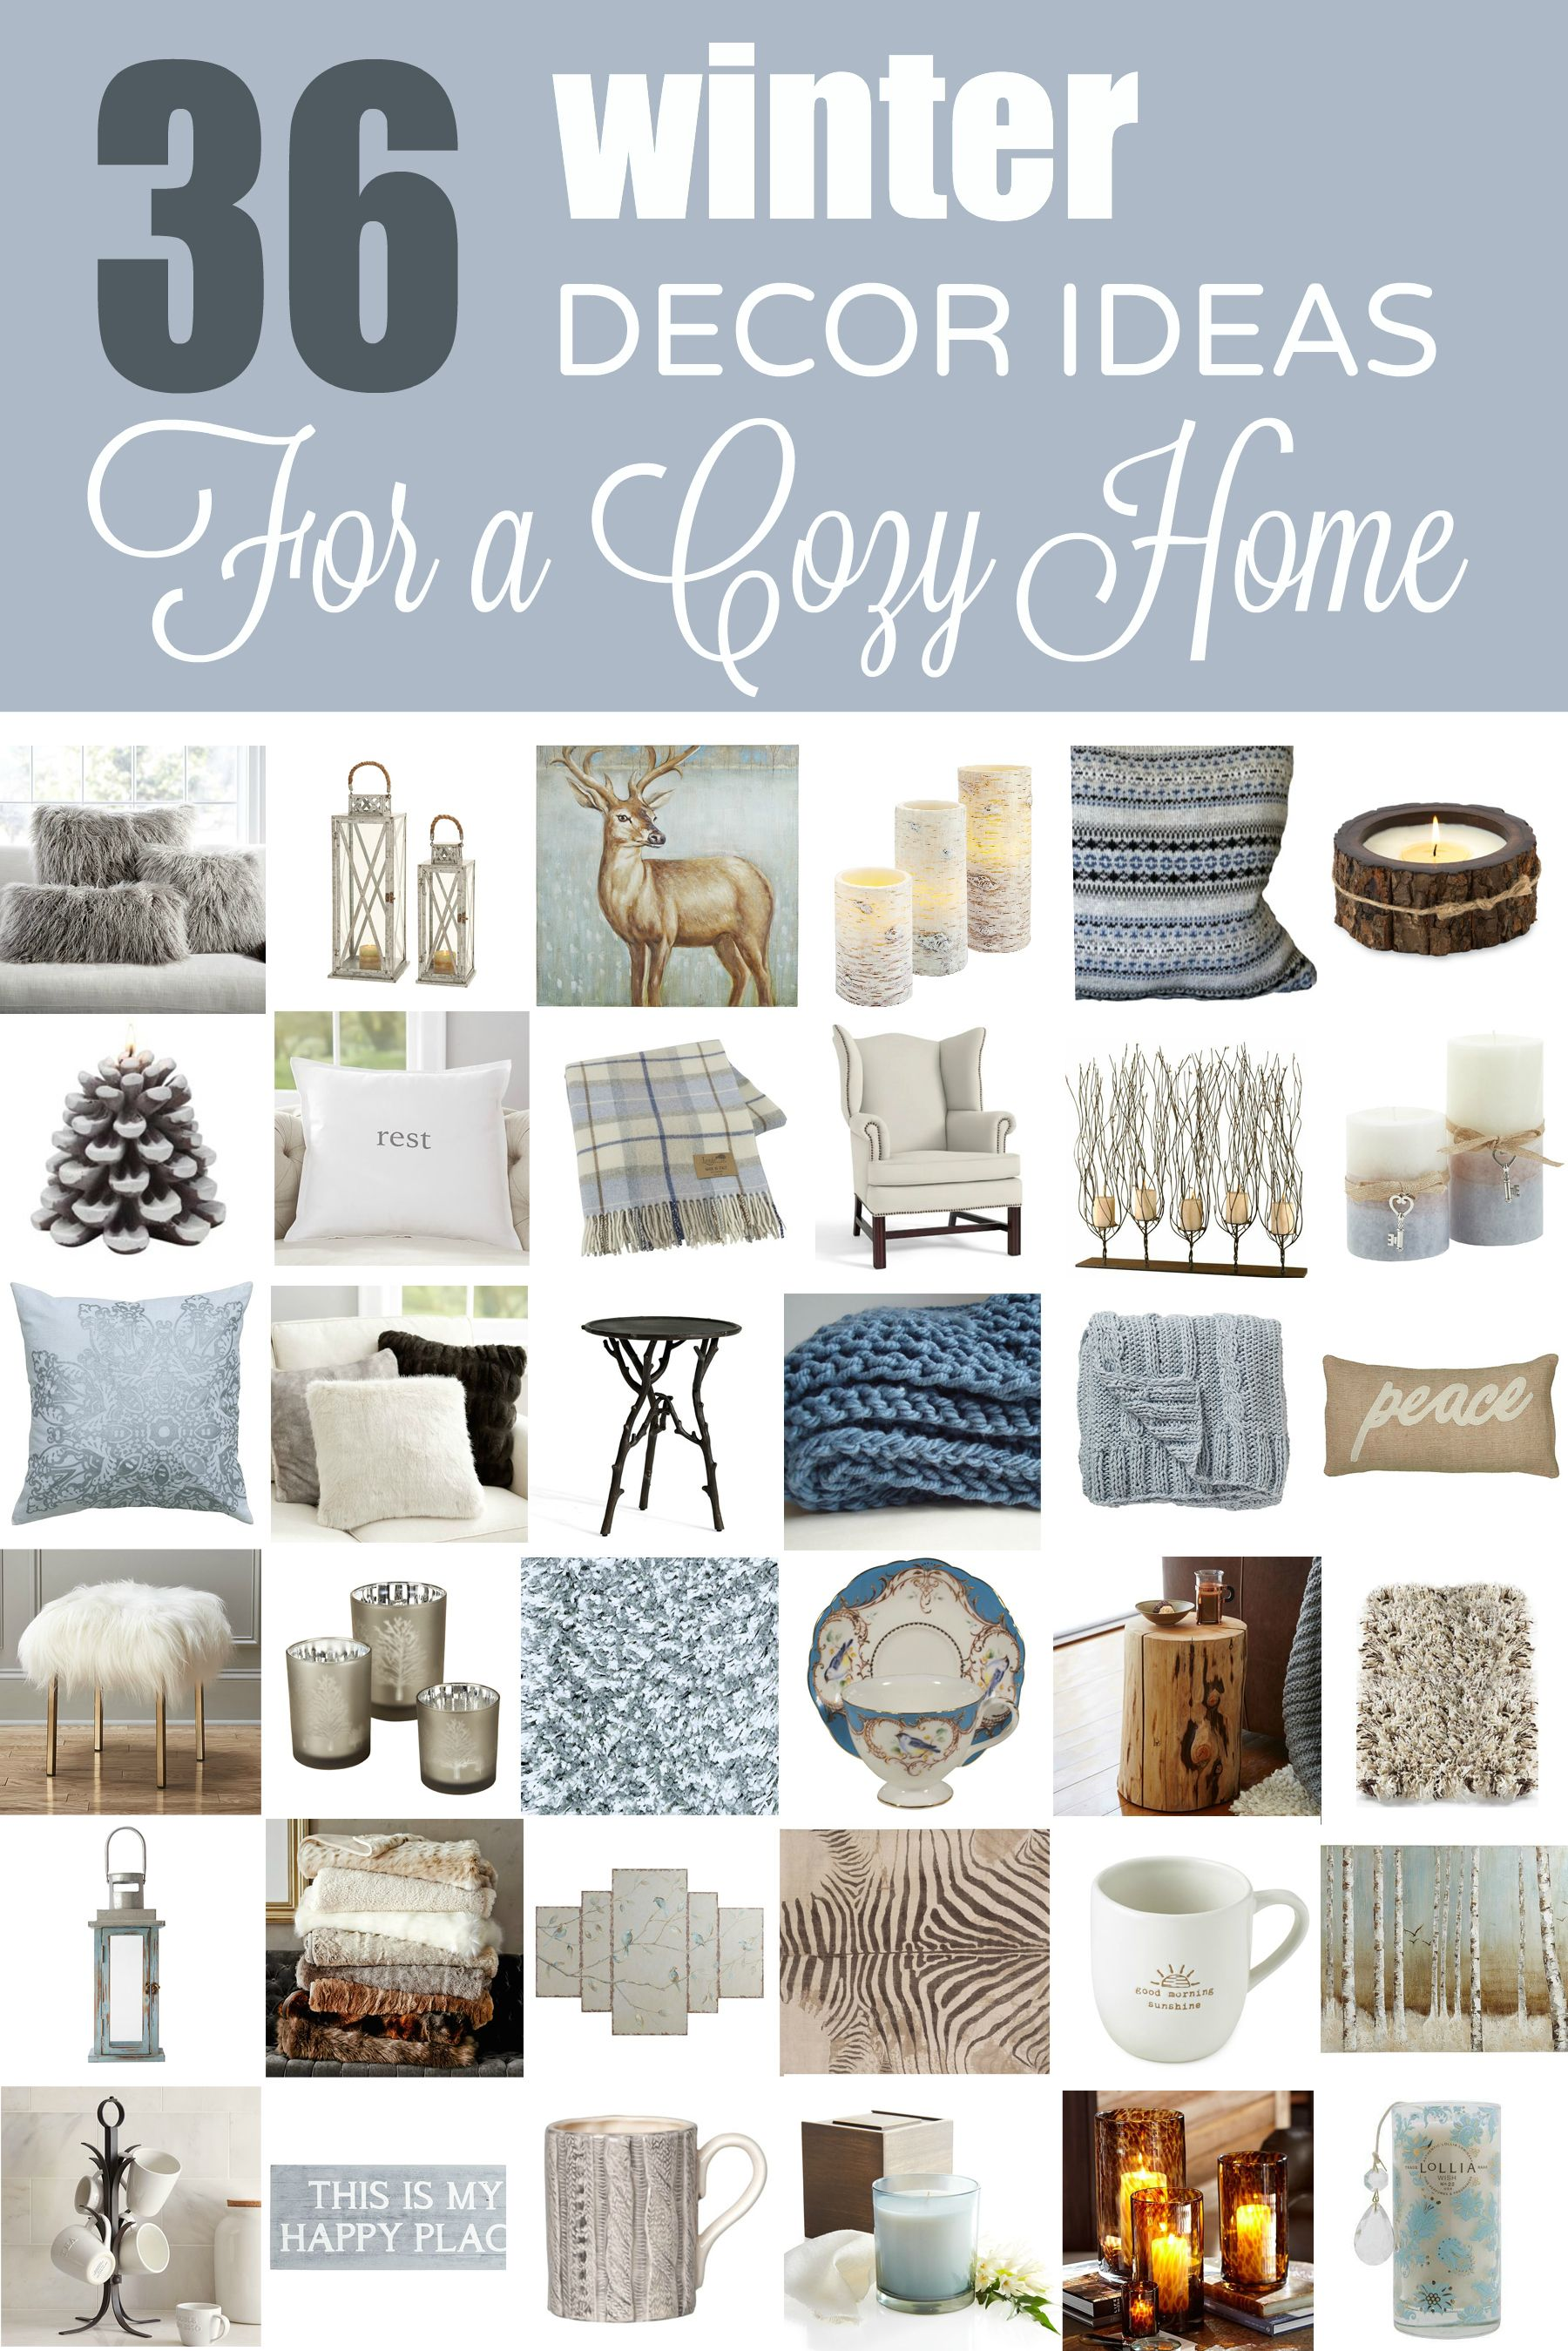 36 Winter Decorating Ideas to Cozy Up Your Home | Cozy, Winter and Hygge